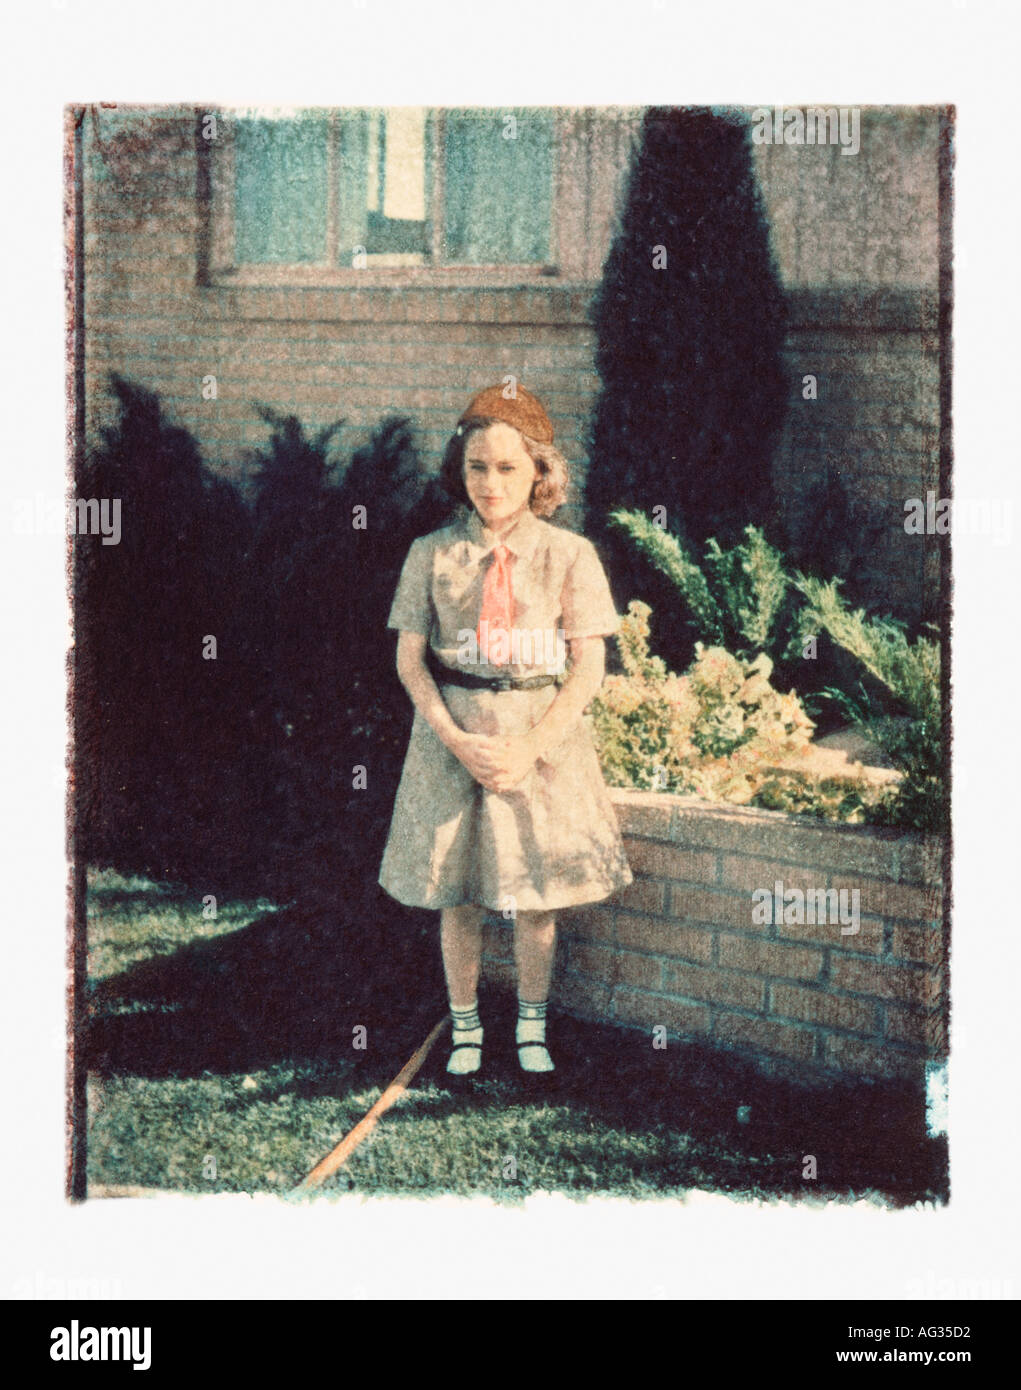 Polaroid transfer portrait of girl in Brownie outfit circa 1960s Stock Photo